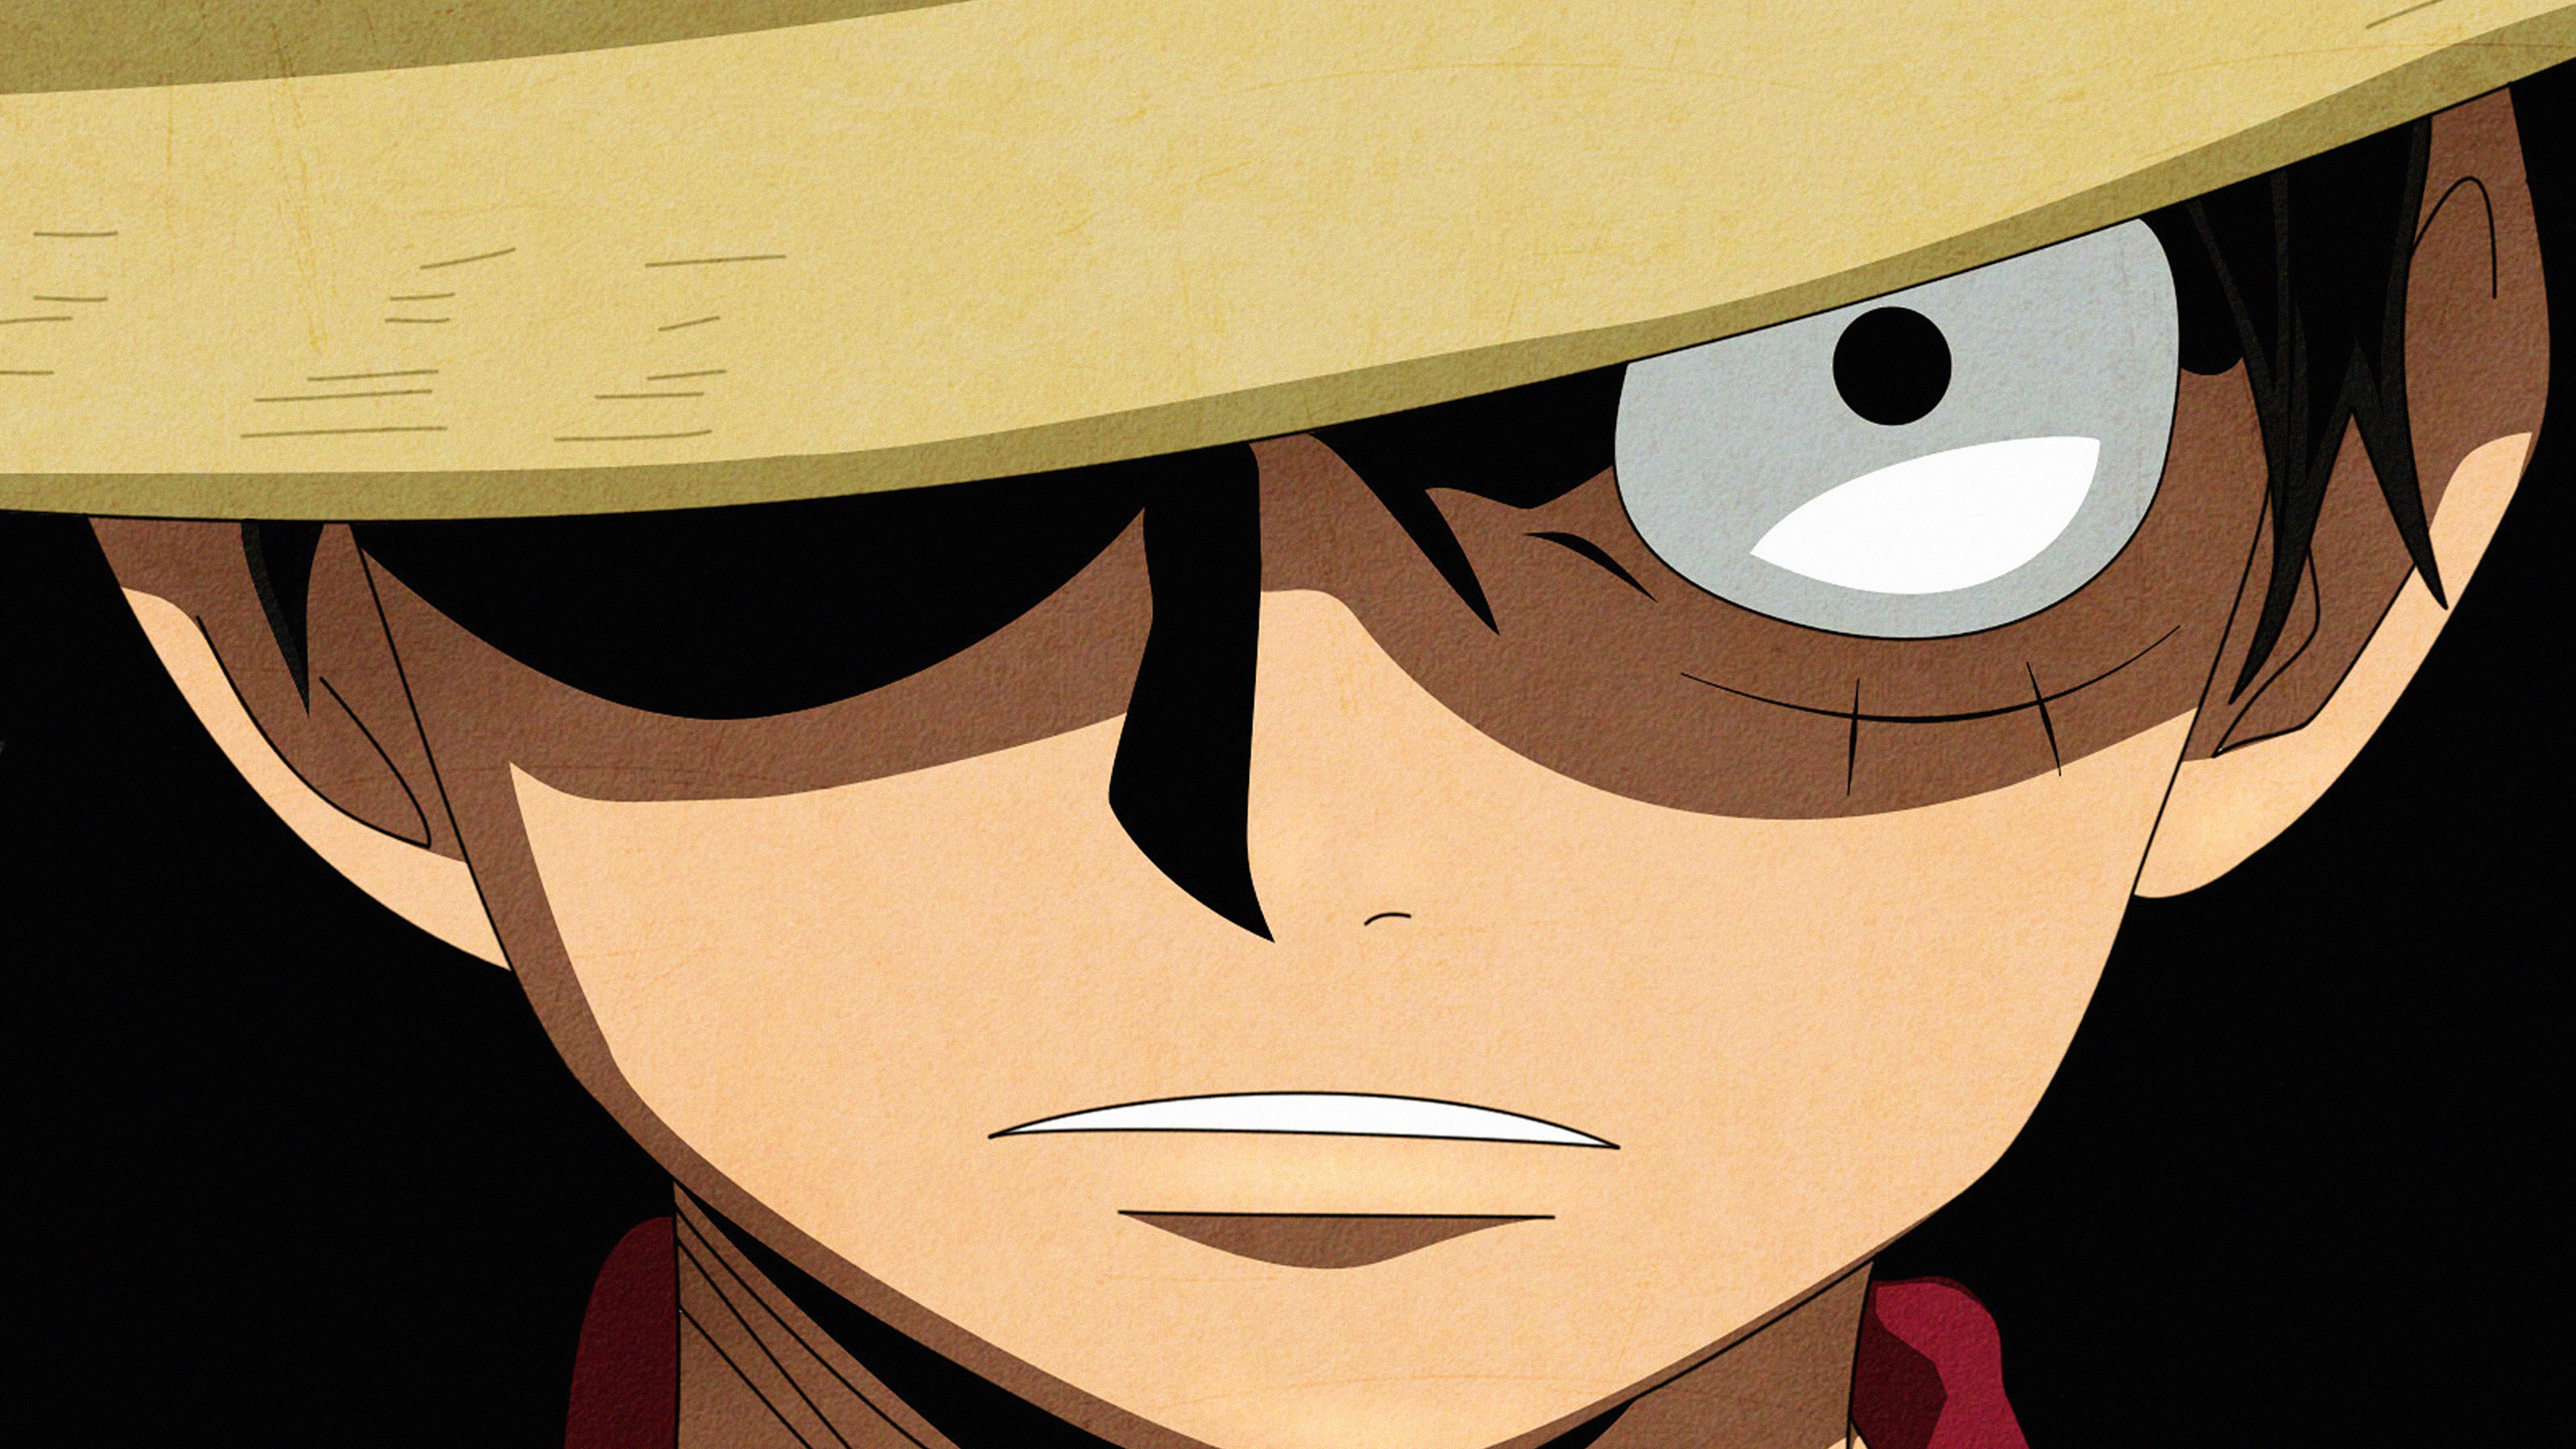 One Piece Wallpaper Iphone Ad37 One Piece Anime Papers Co